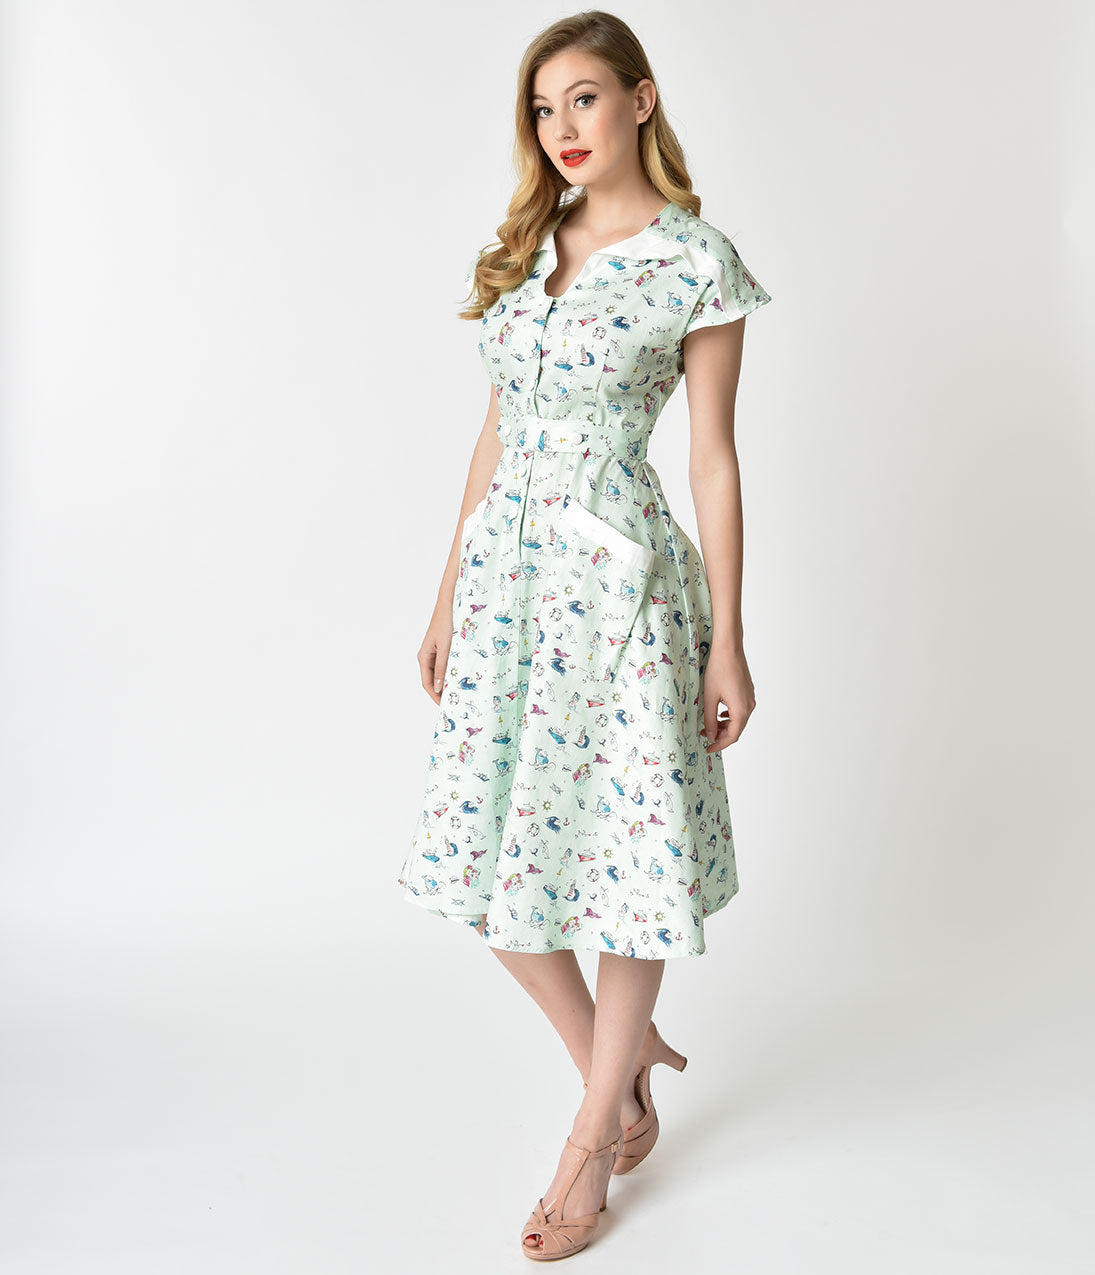 Vintage 50s Dresses: 8 Classic Retro Styles Unique Vintage 1950S Style Mint  Sailor Print Cap Sleeve Hedda Swing Dress $128.00 AT vintagedancer.com